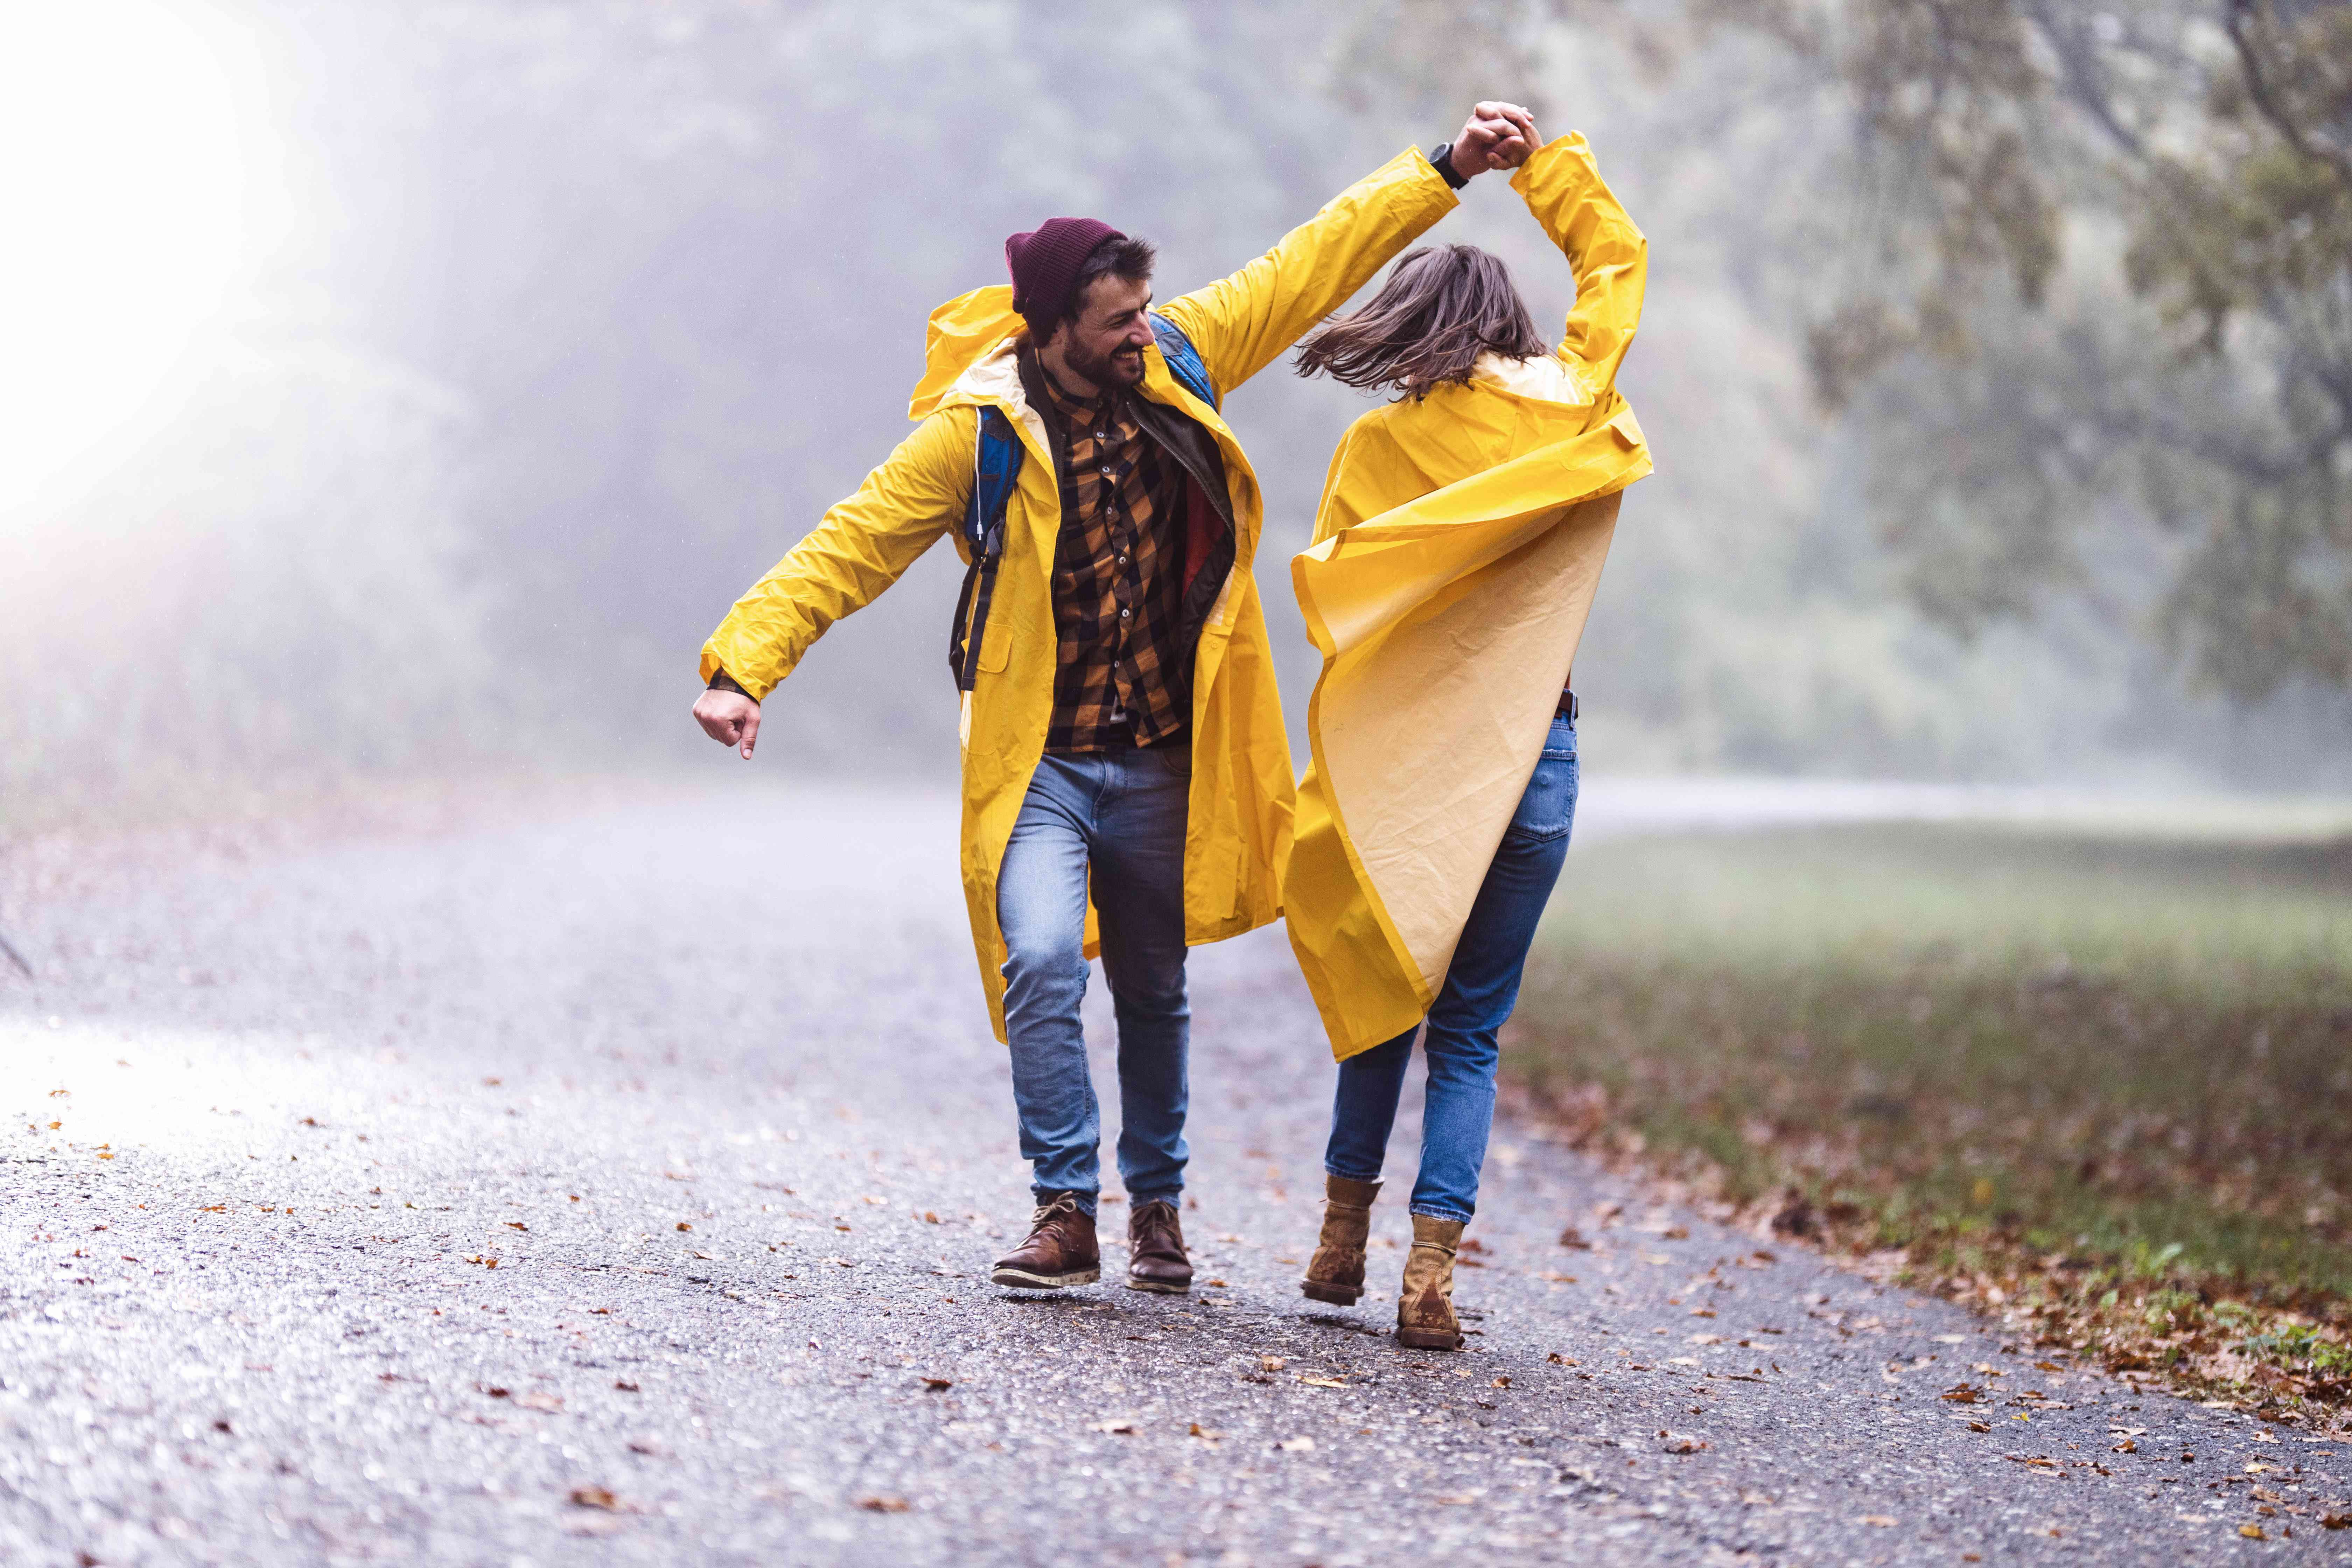 Happy couple in raincoats having fun while dancing on a rain in misty forest.